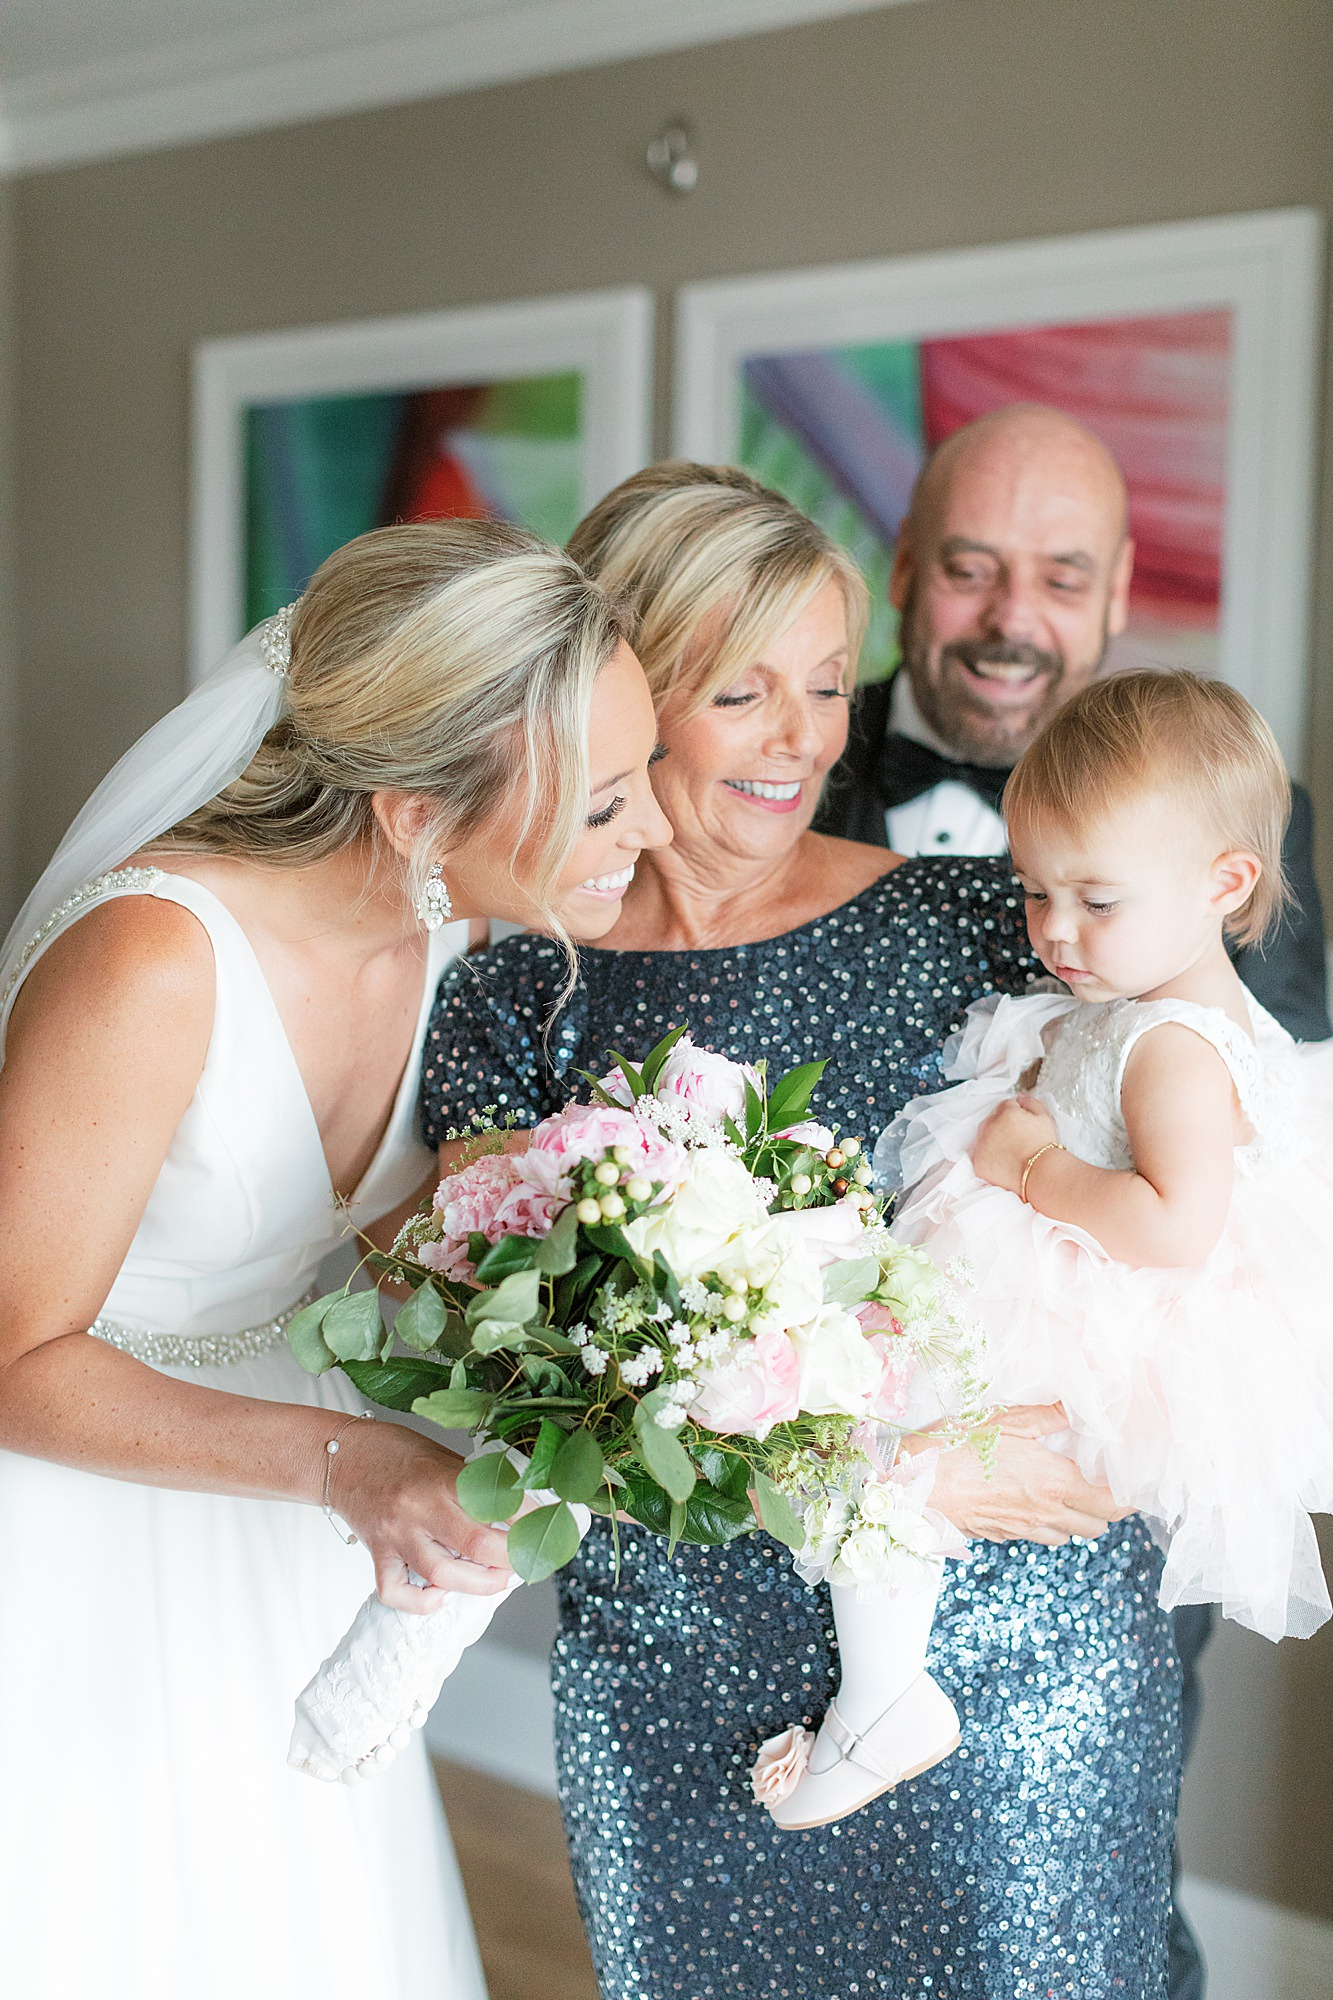 Natural and Vibrant Wedding Photography at the Reeds in Stone Harbor NJ by Magdalena Studios 0013